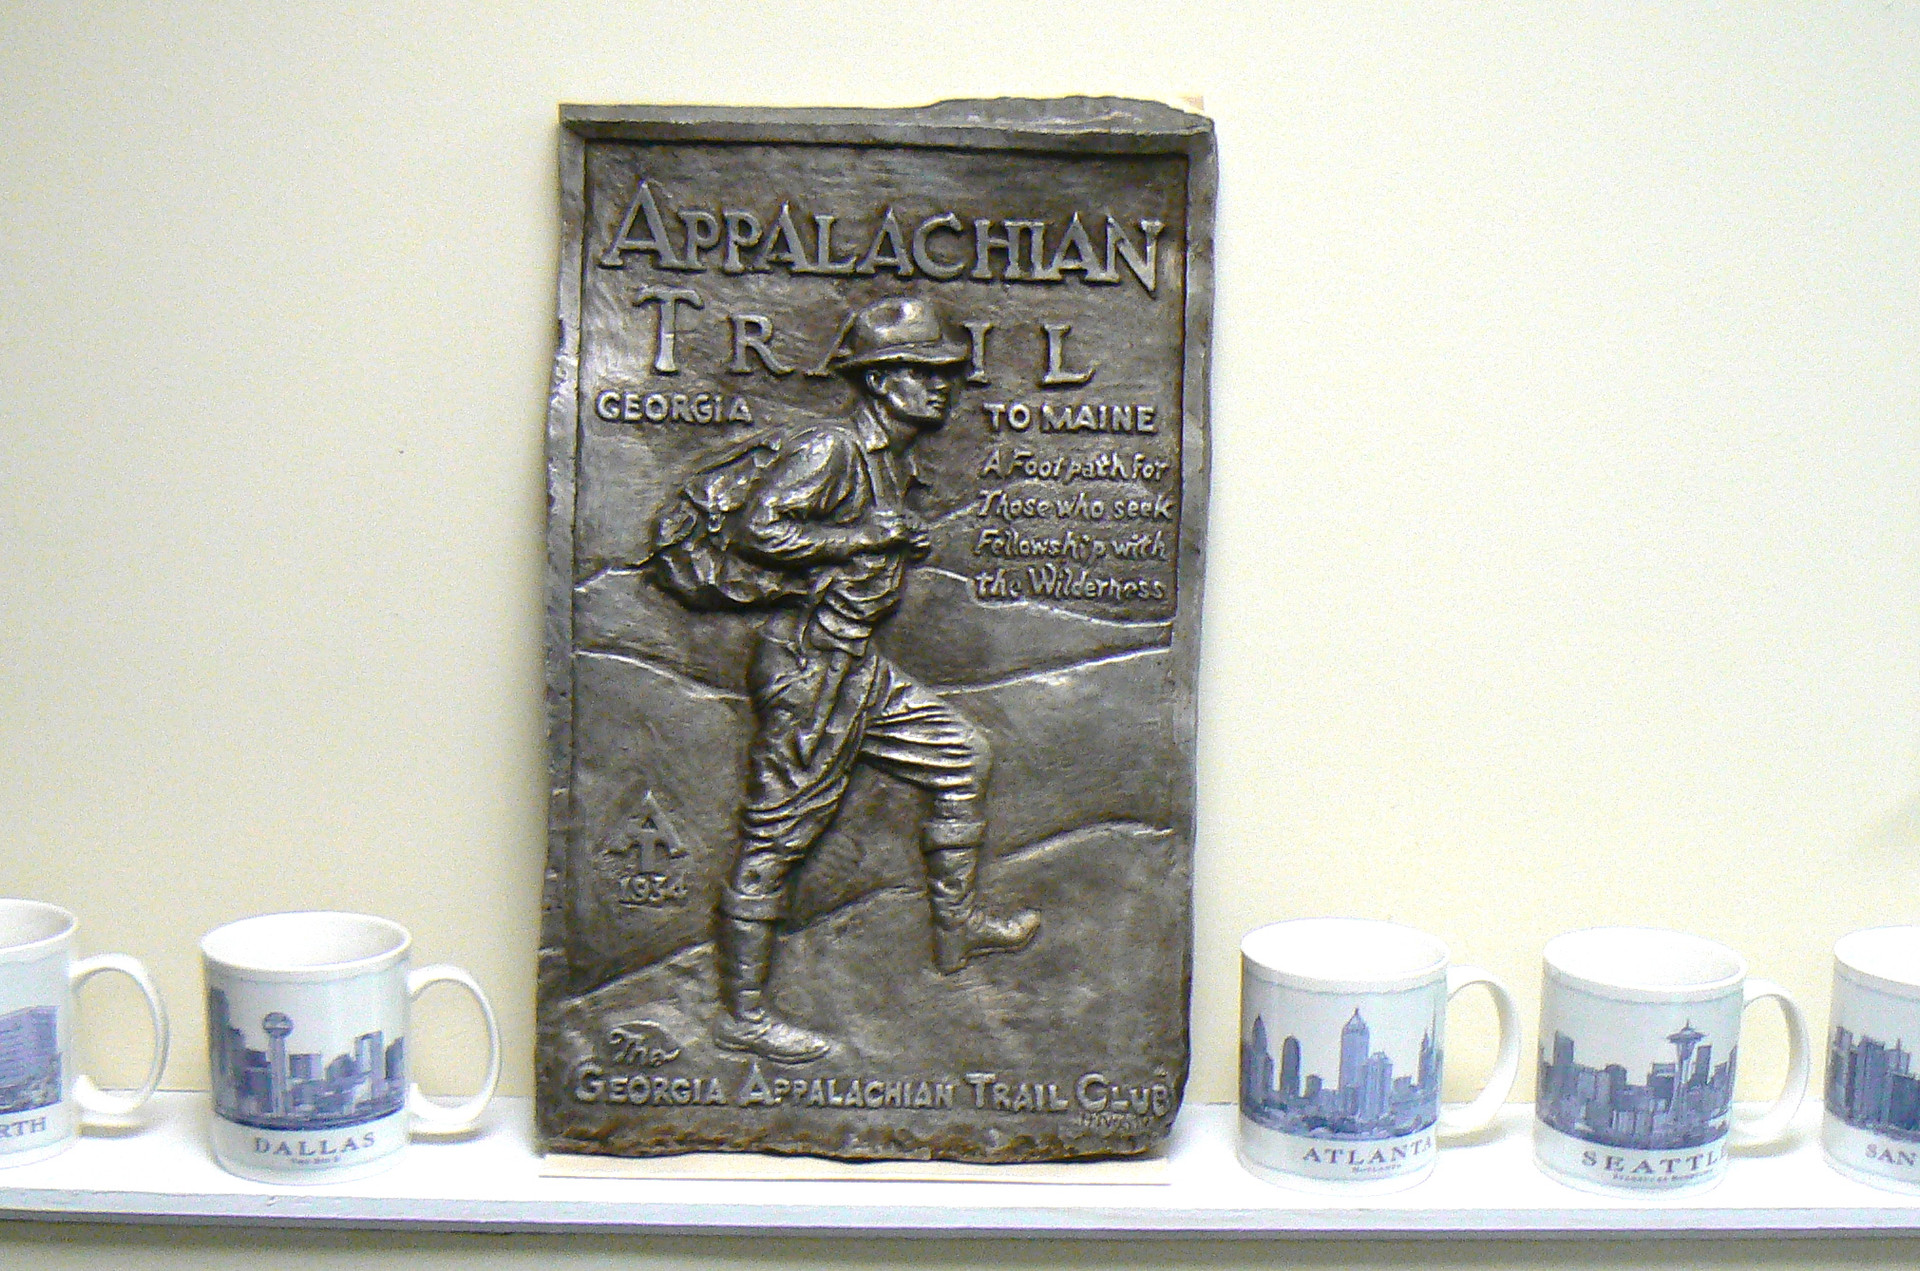 The AT plaque in better days. The large Starbucks mugs give a sense of perspective regarding its size.